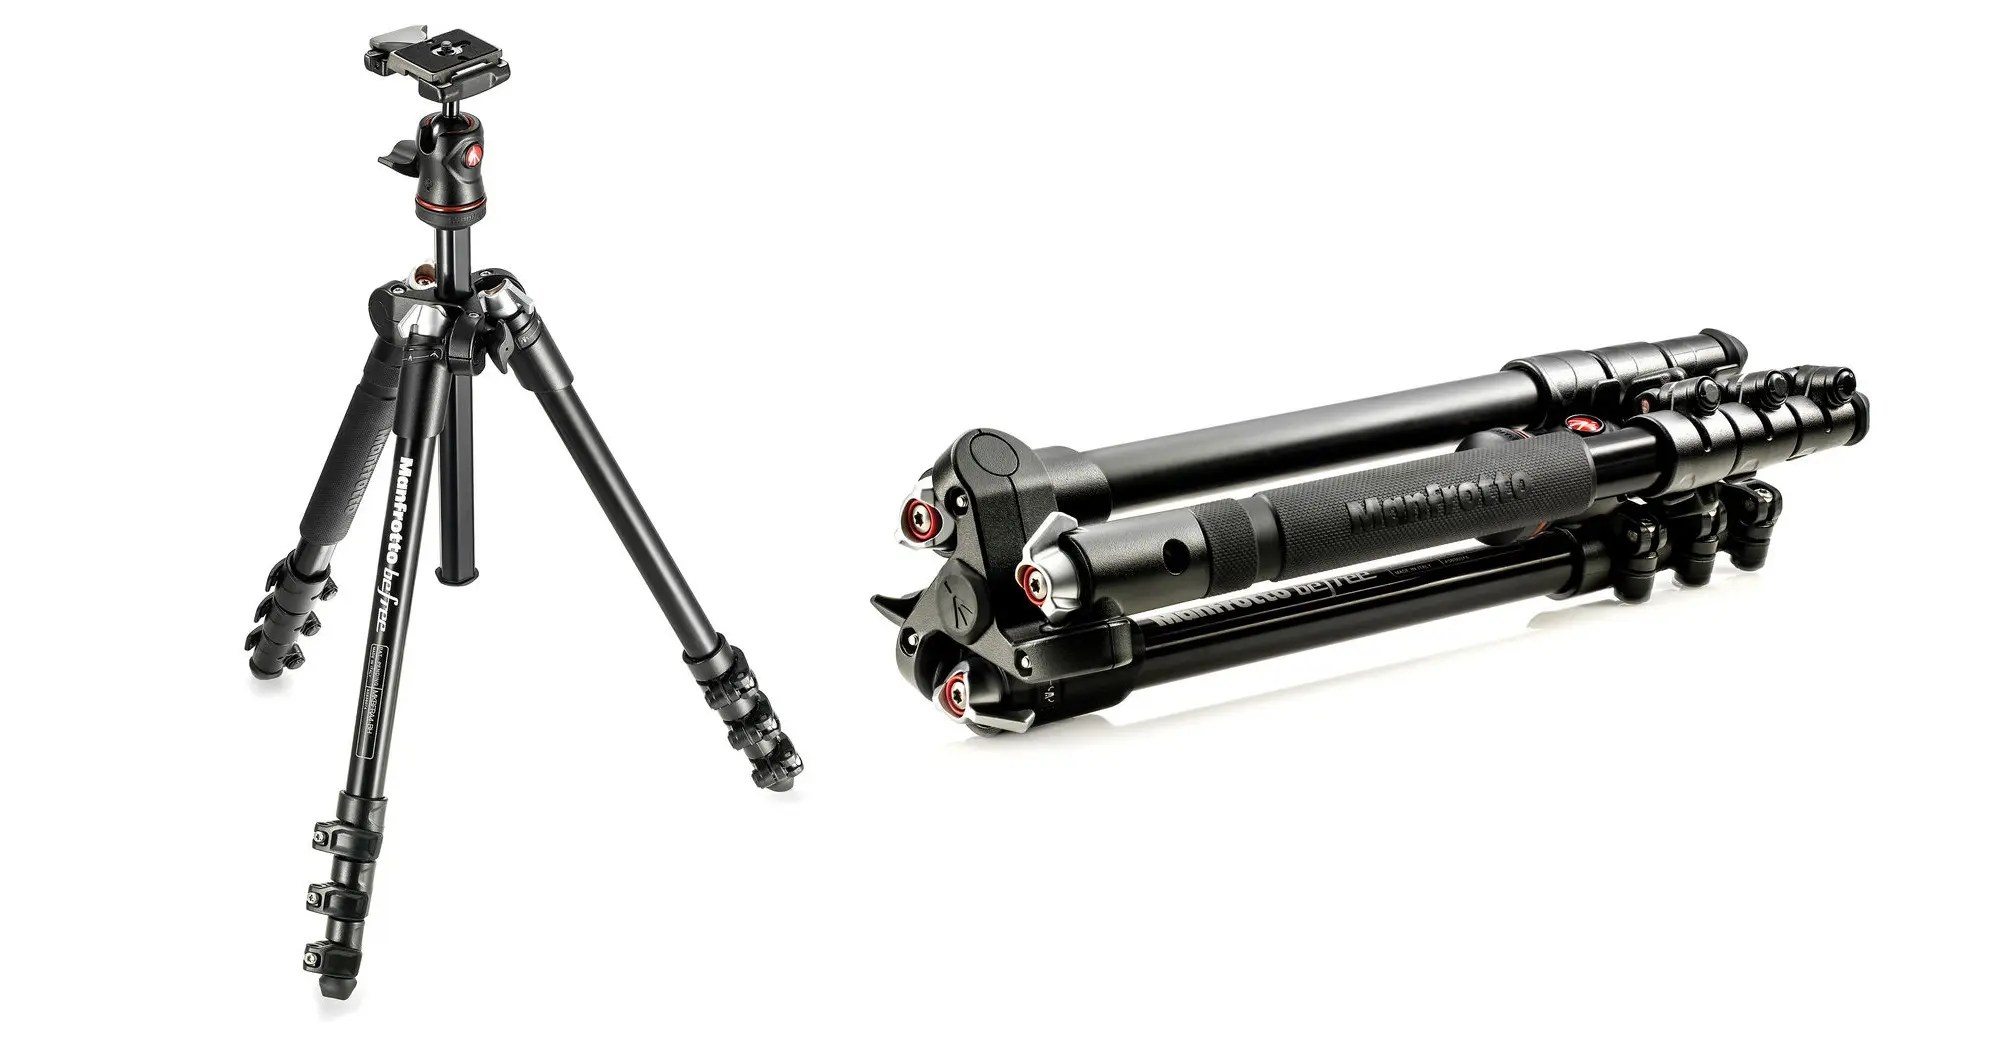 Manfrotto's New BeFree Compact Tripod is Aimed at the